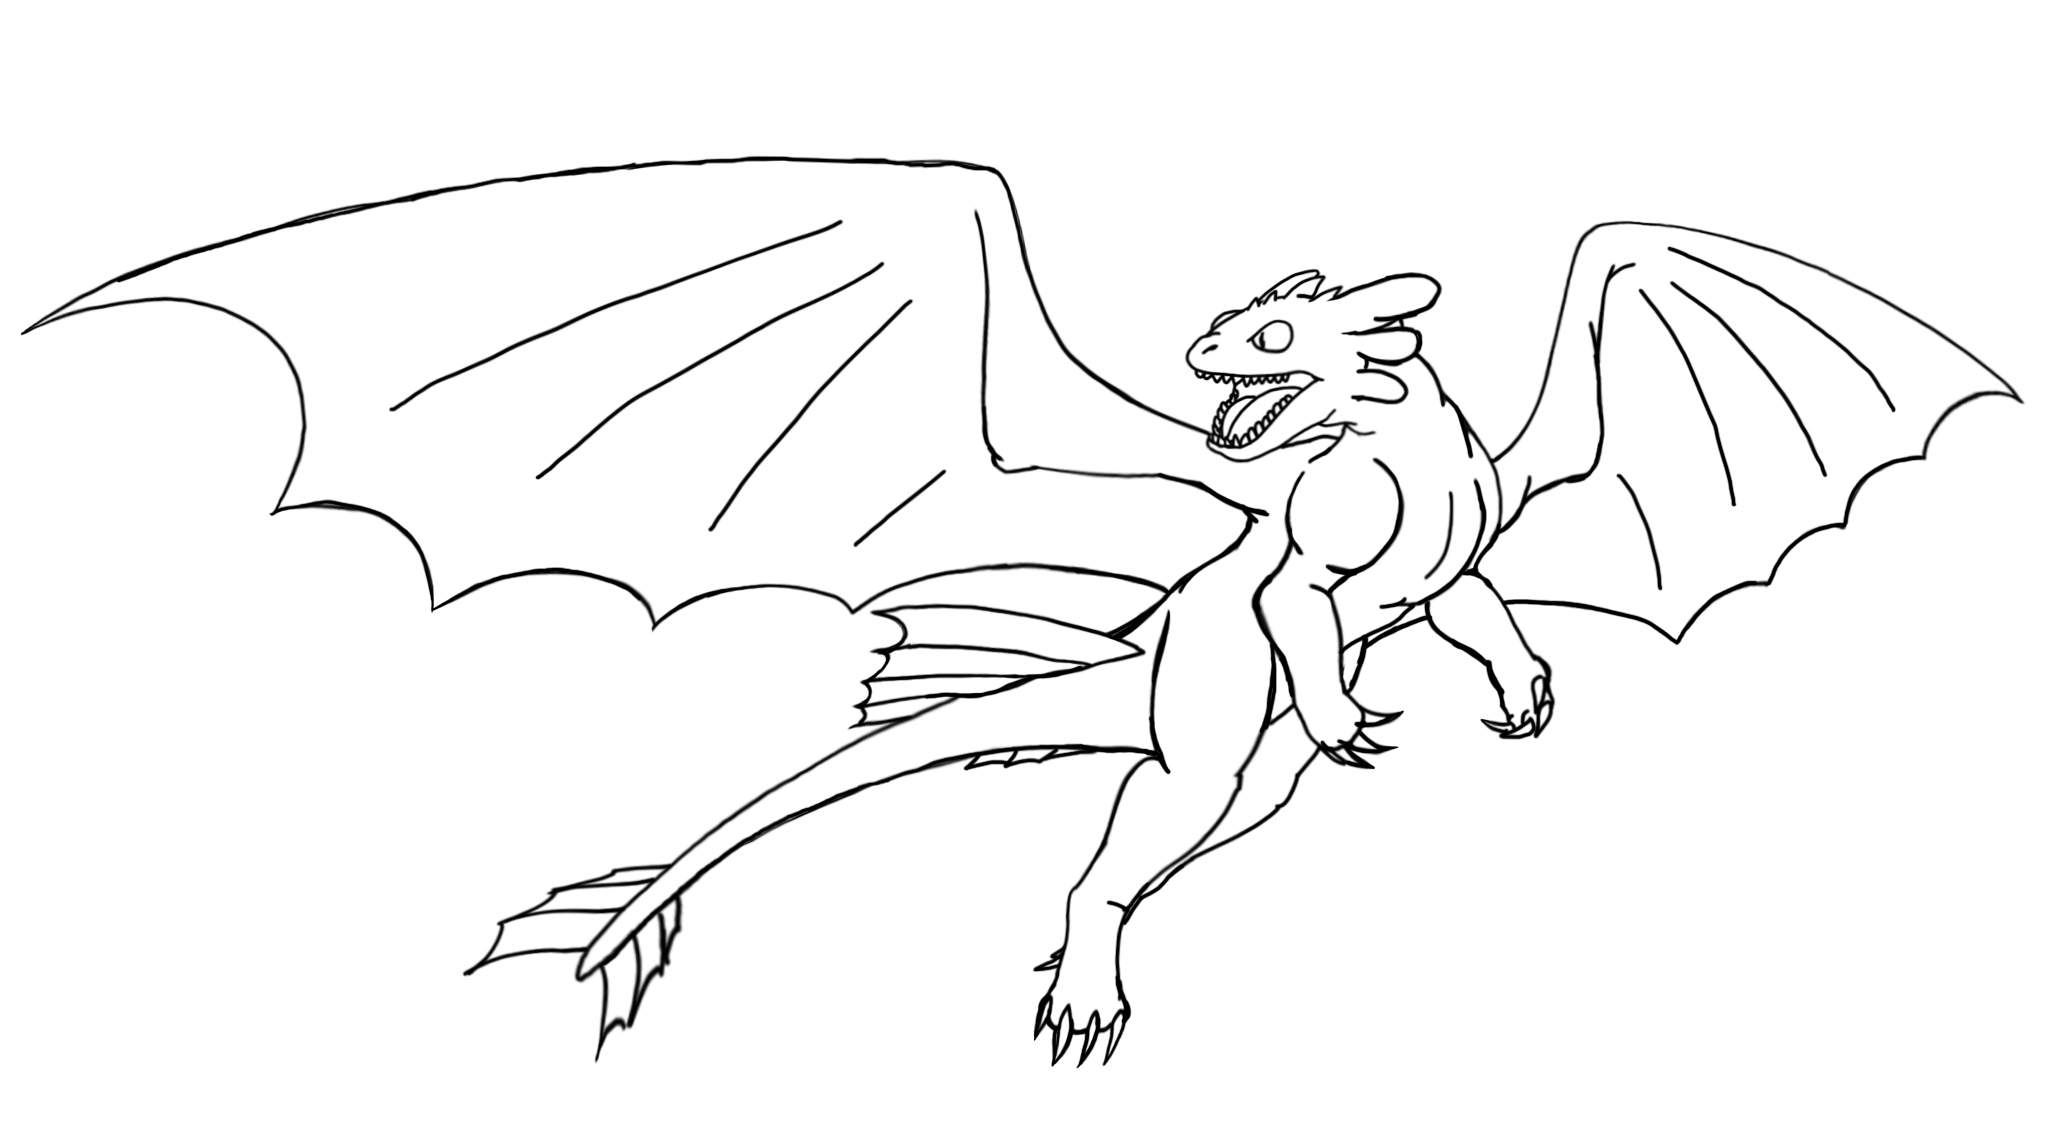 how to draw toothless dragon dragon toothless drawing dragon toothless drawings in 2020 dragon toothless draw how to